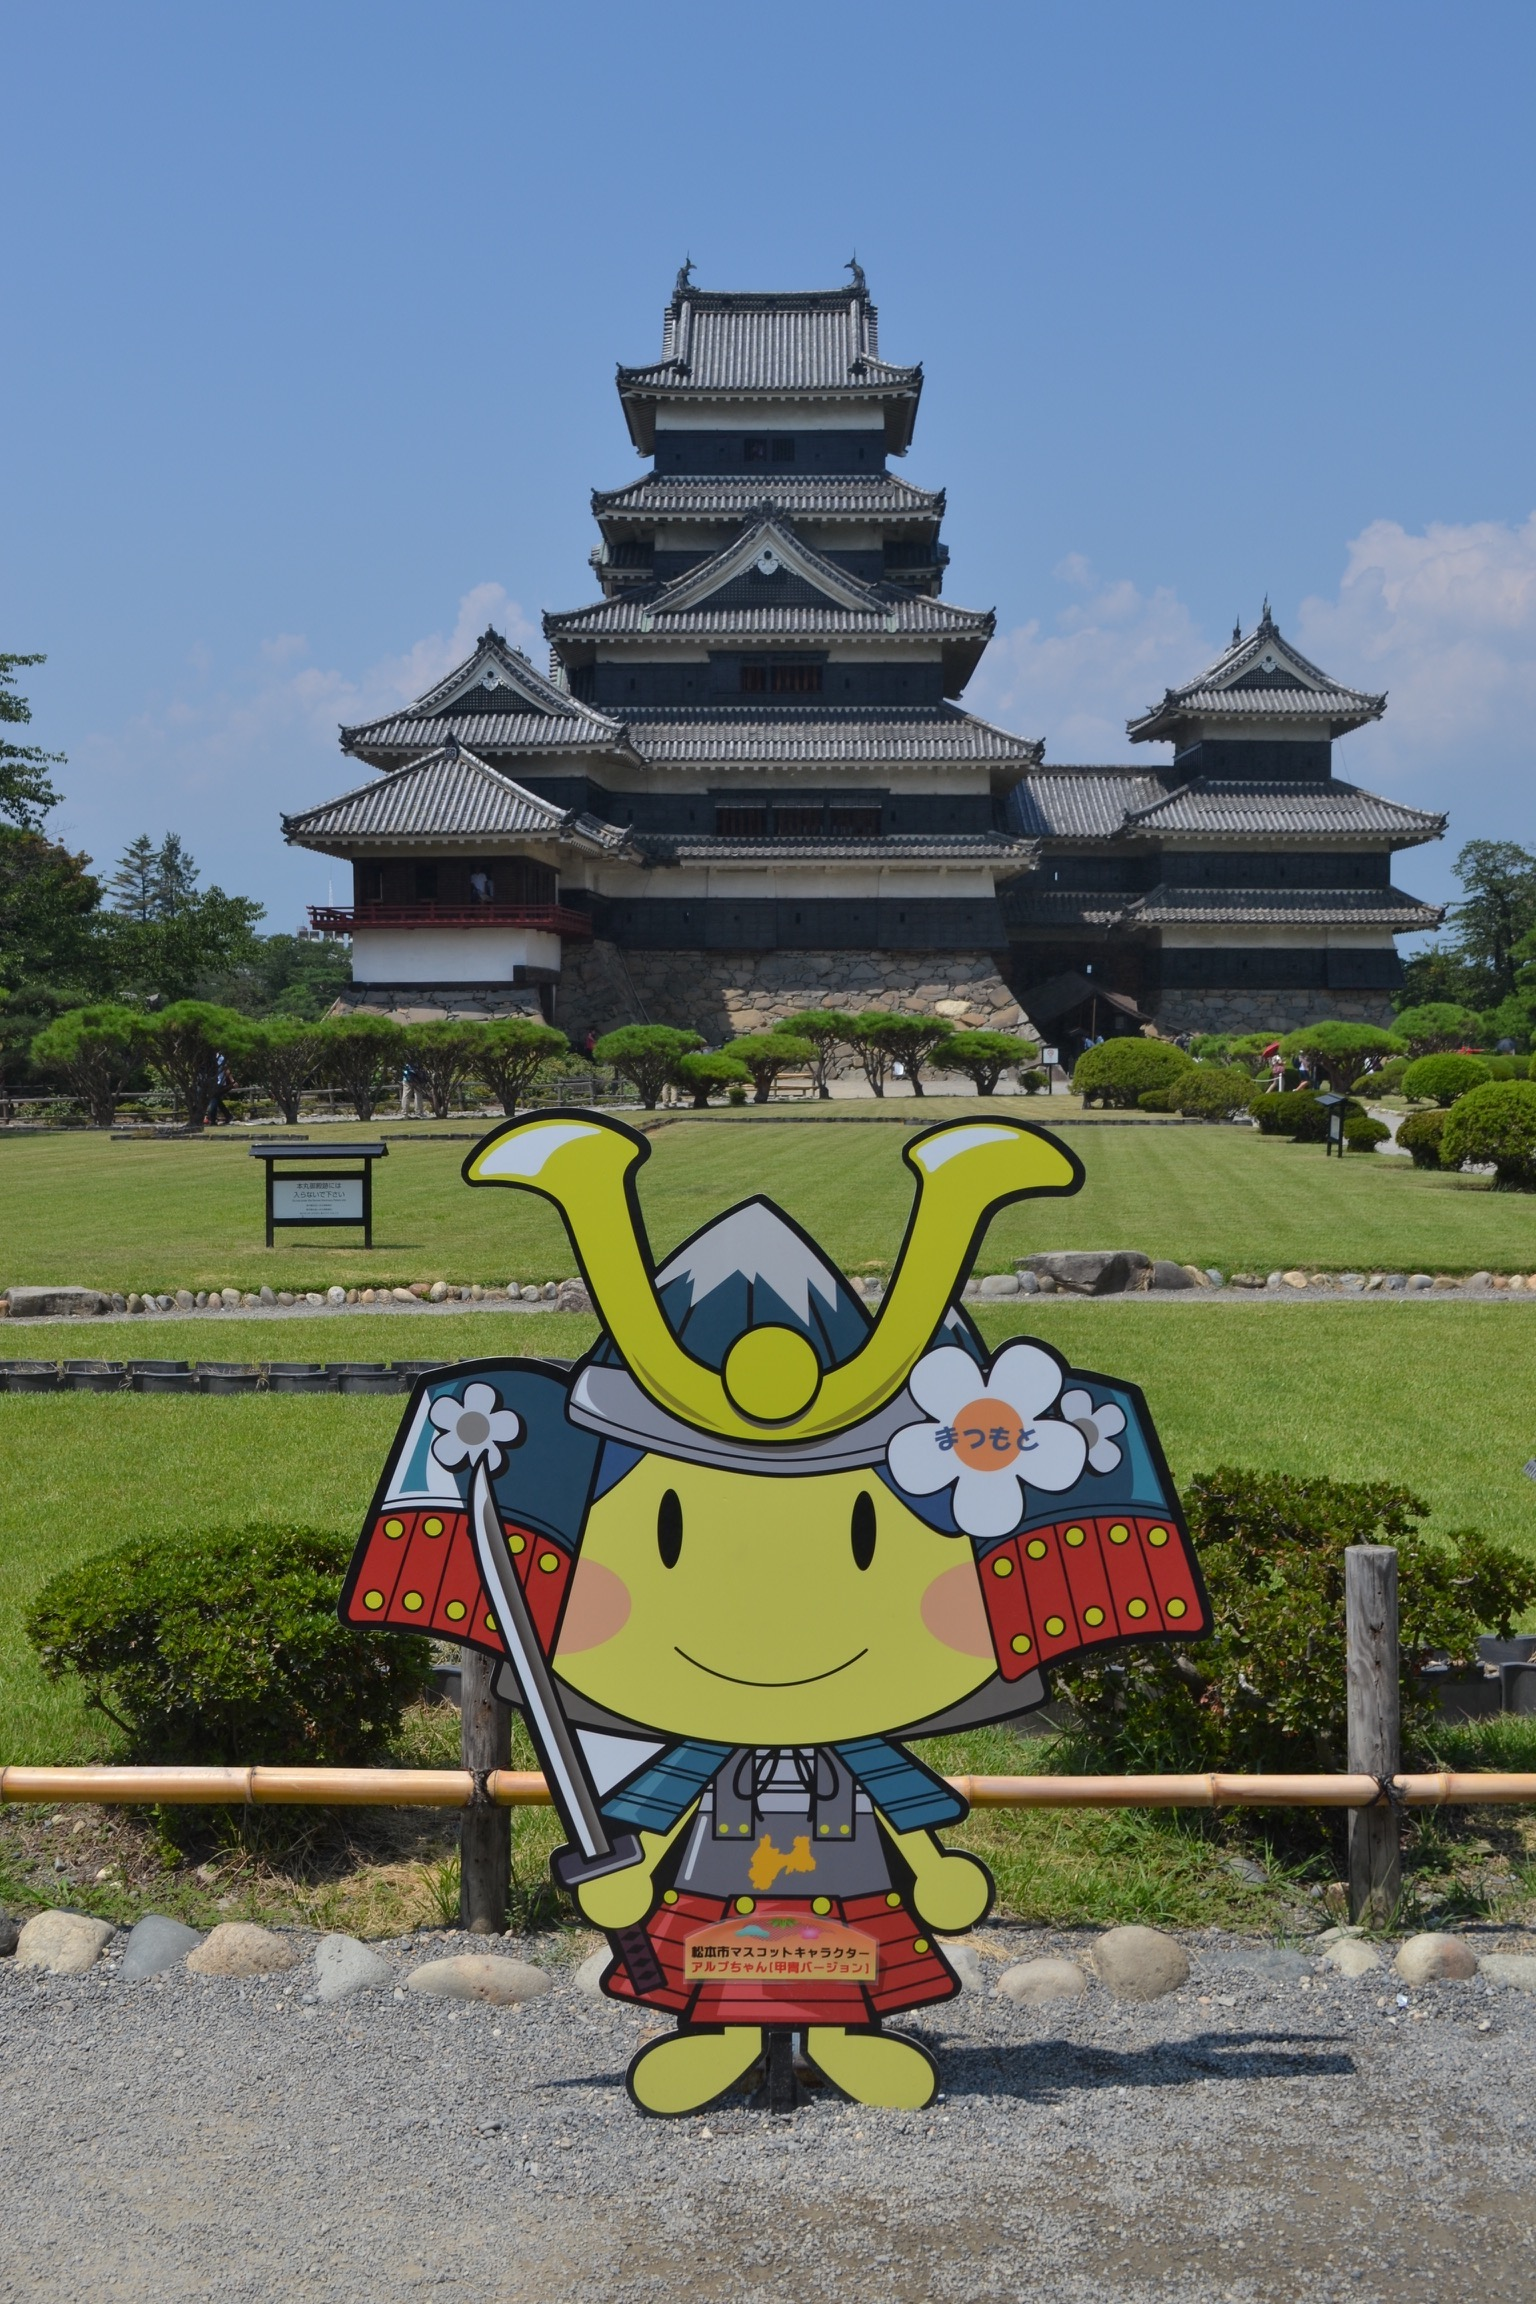 A cartoon samurai stands on the castle grounds.